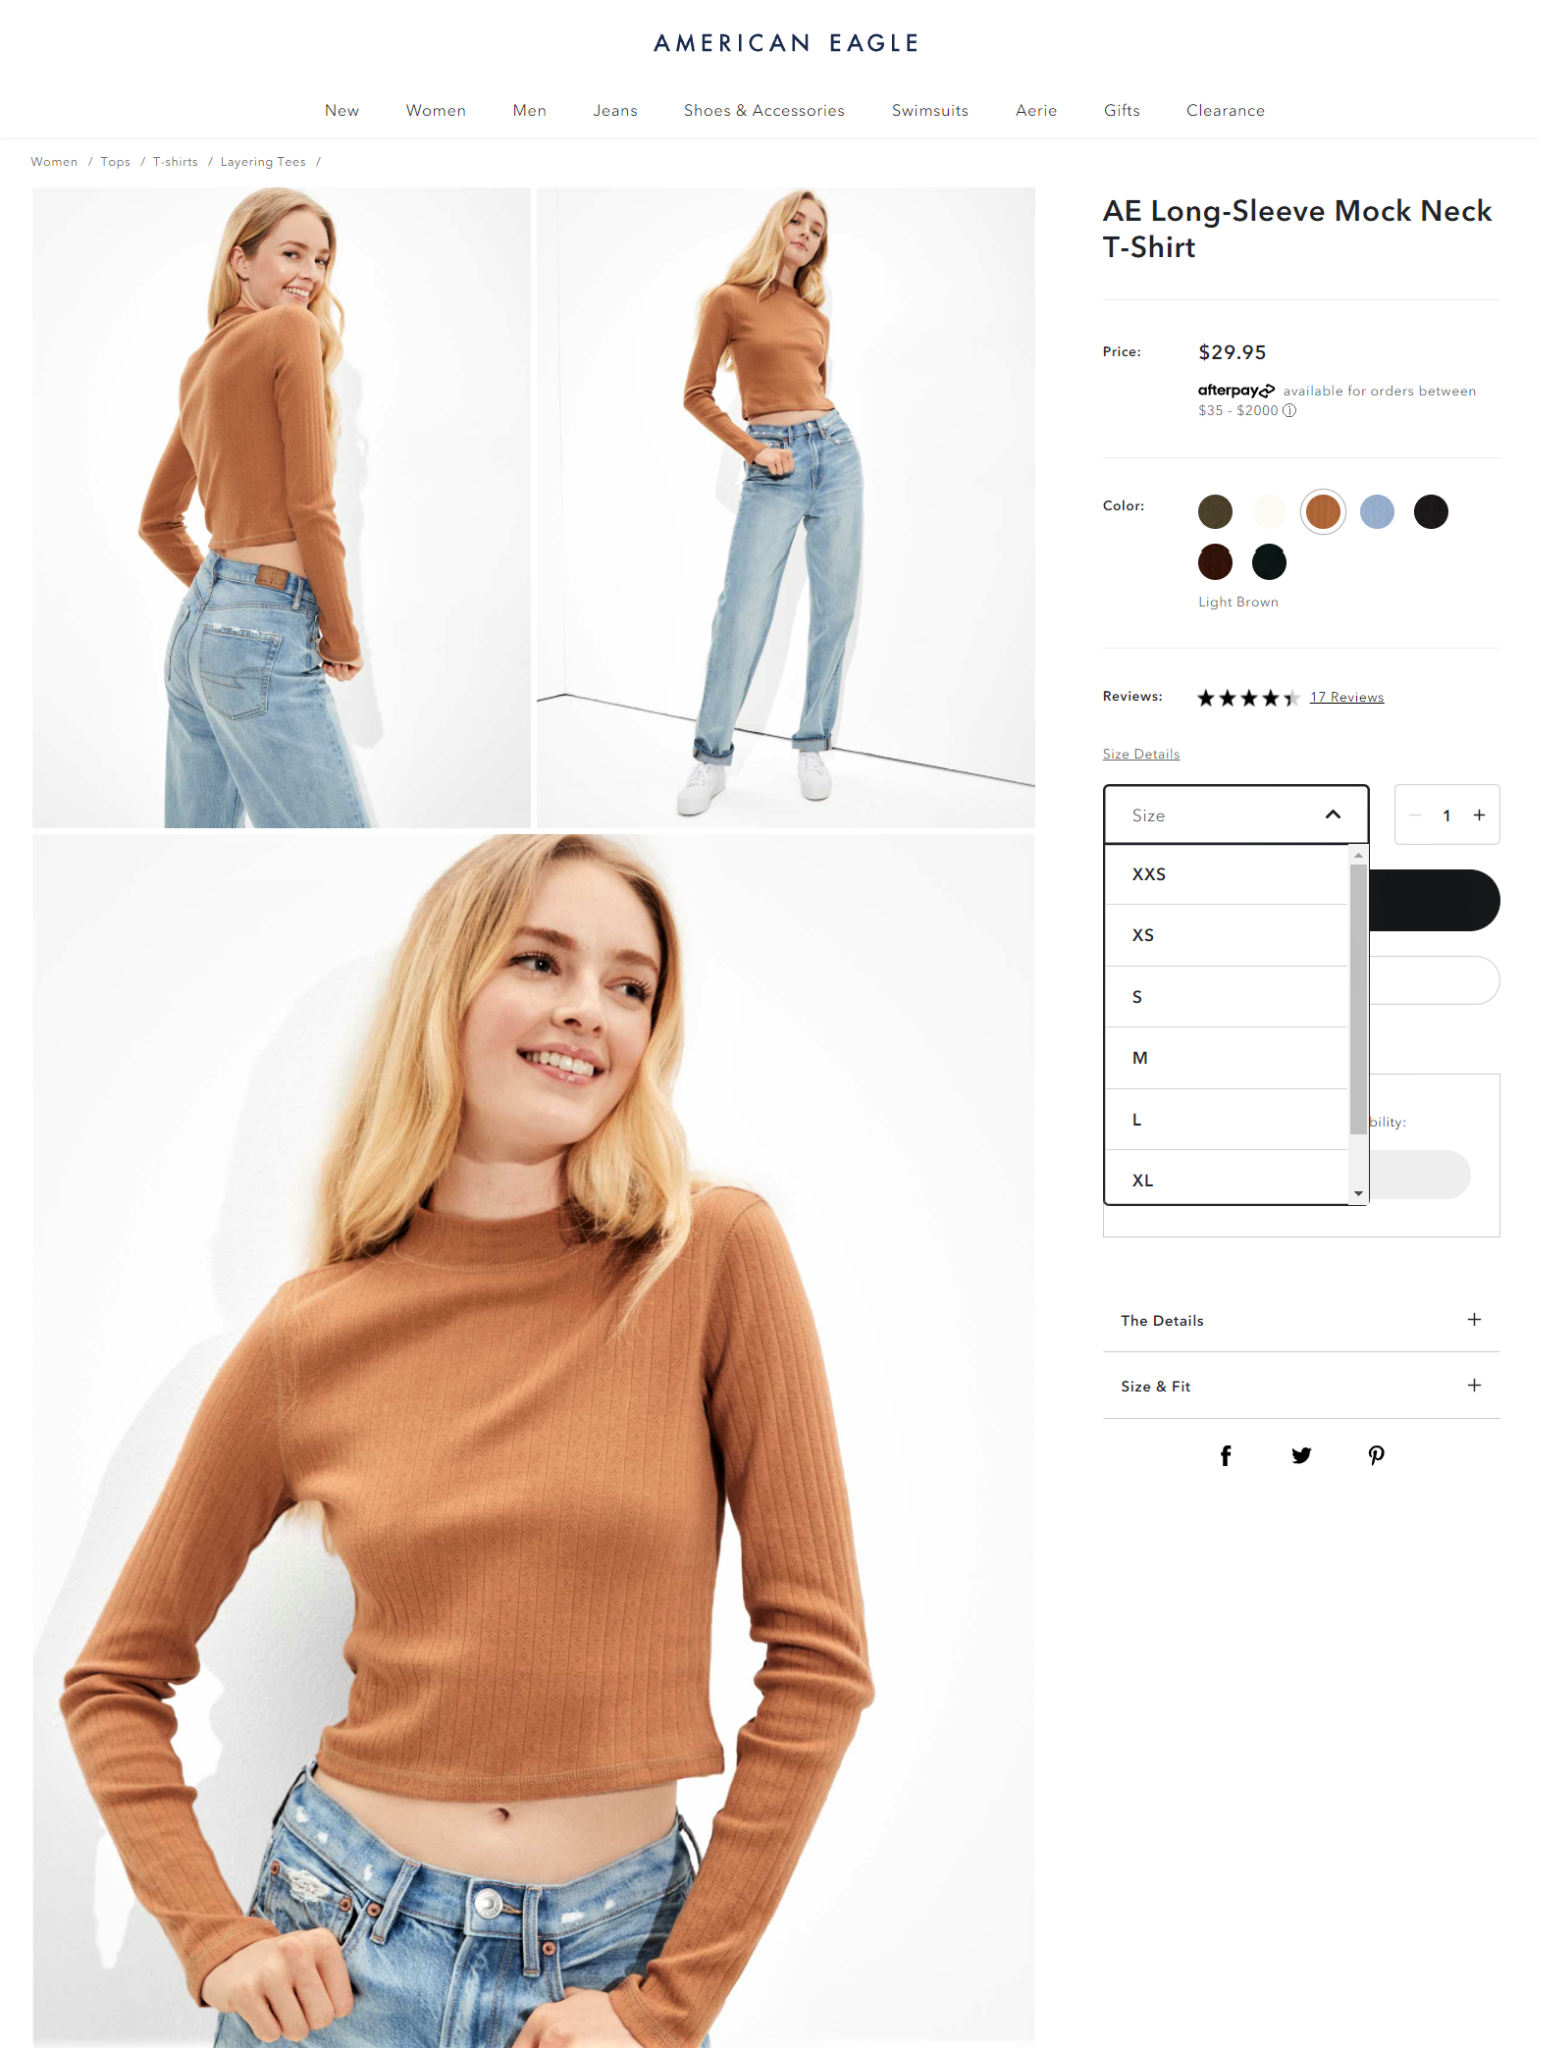 Example of color and size charts for improving product page UX by American Eagle